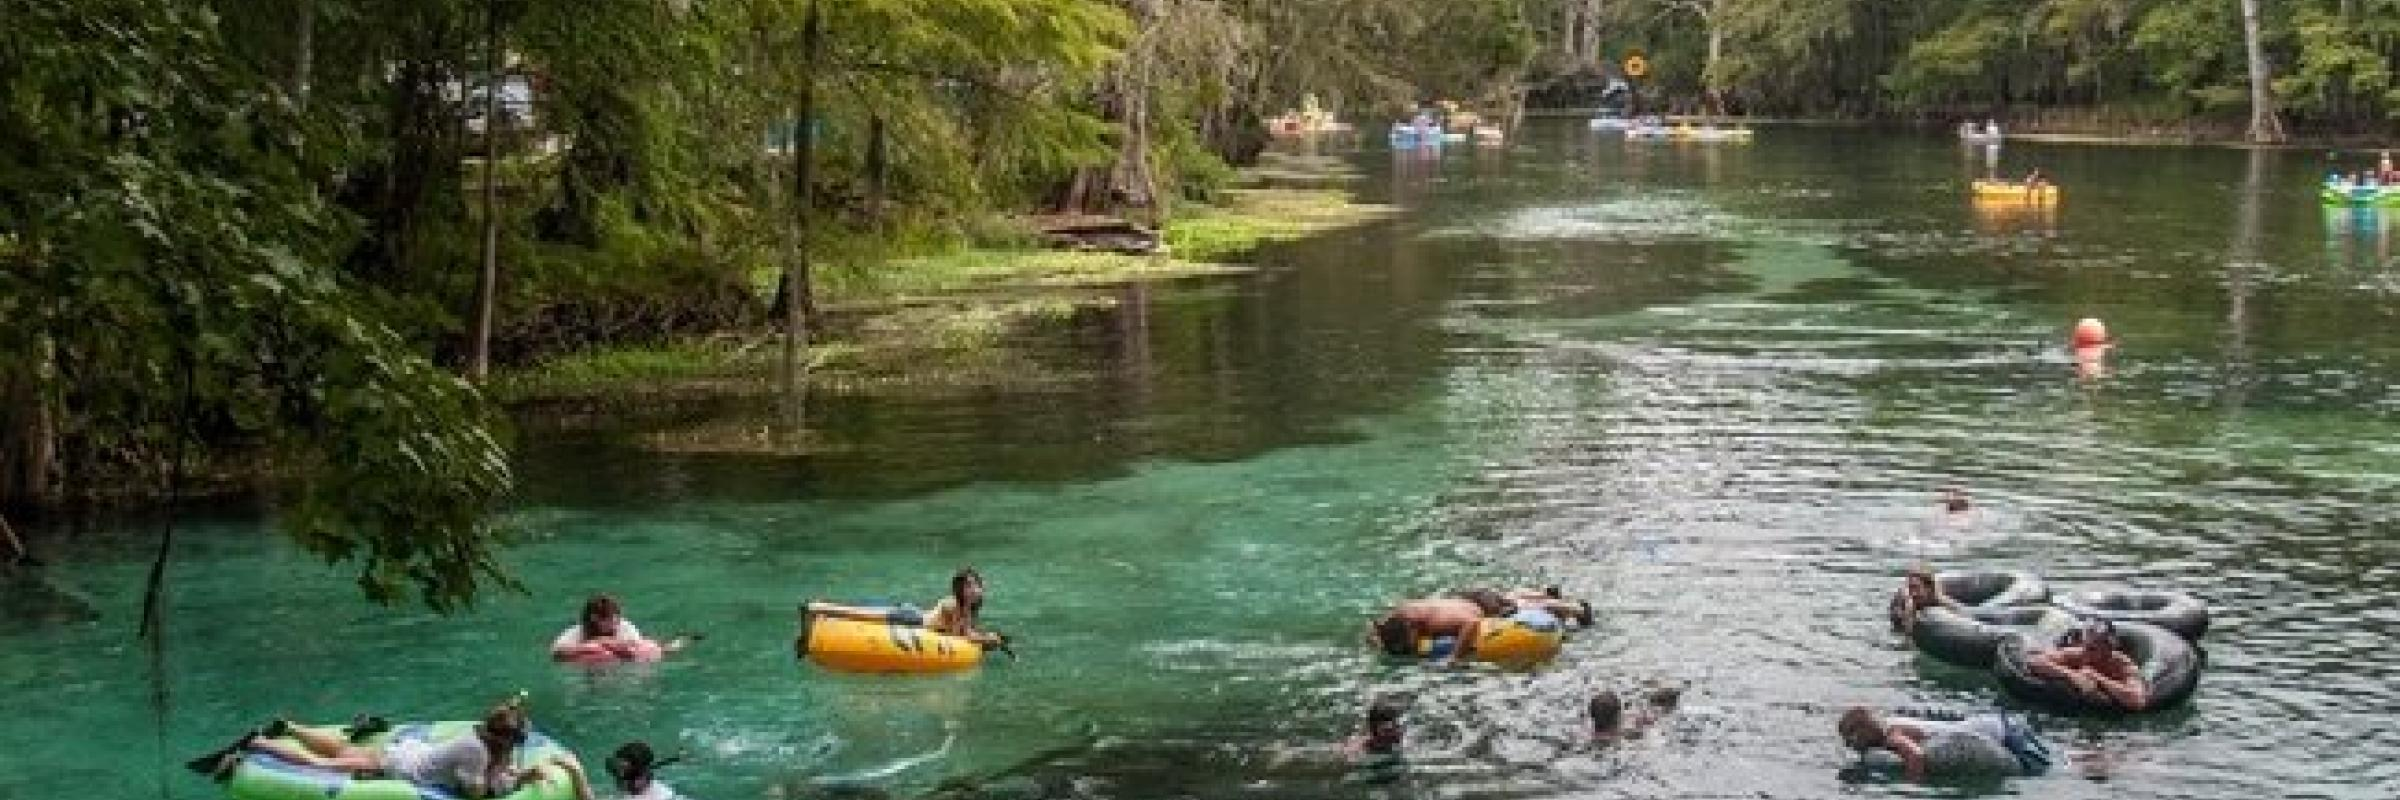 Tubing in Gilchrist County